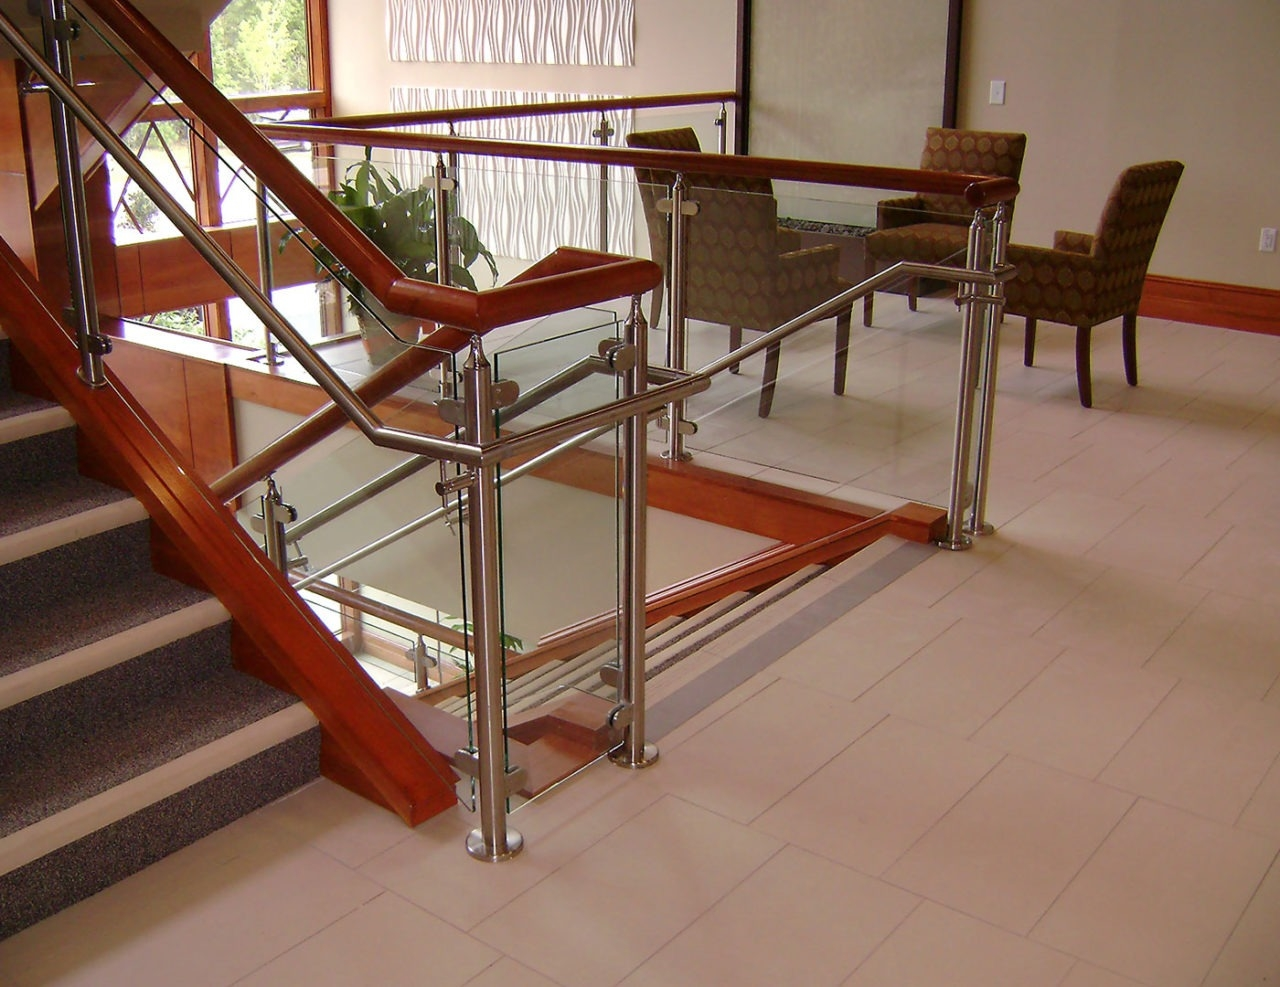 Monaco Post Supported Glass Railing Trex Commercial Products | Wood And Steel Handrail | Outdoor | Column | Stainless Steel | Balustrade | Ultra Modern Steel